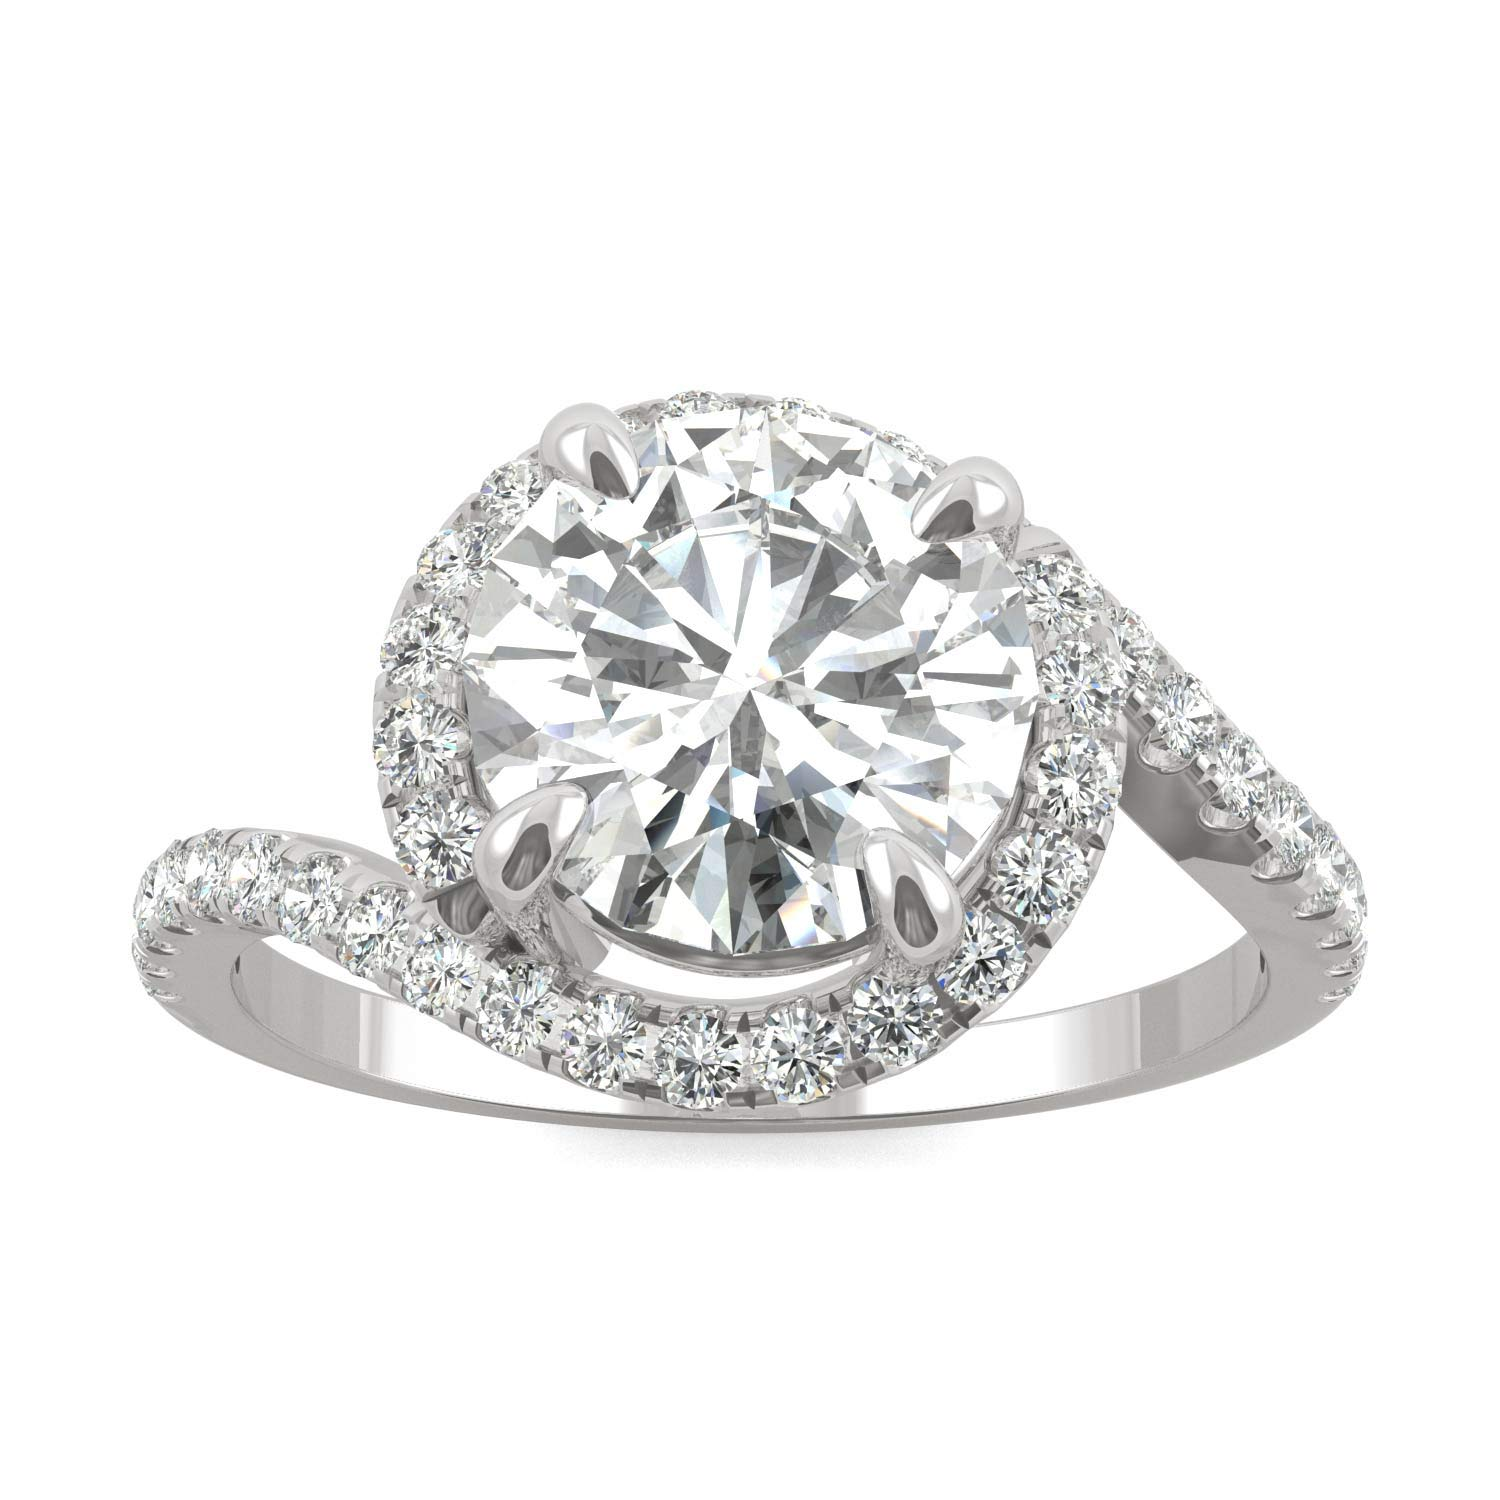 14K White Gold Moissanite by Charles & Colvard 8mm Round Engagement Ring-size 6, 2.24cttw DEW